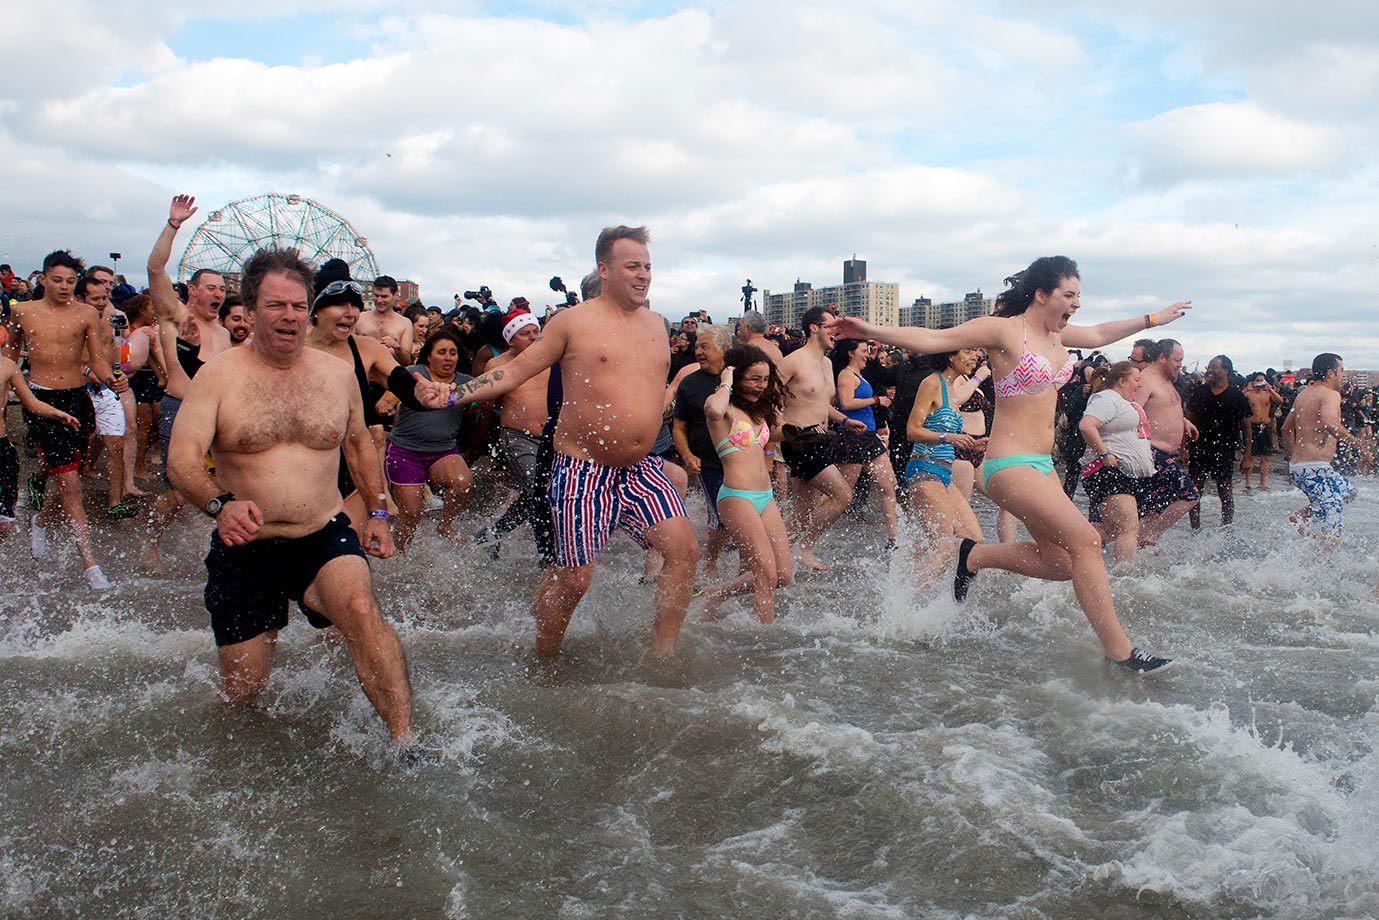 The annual Coney Island Polar Bear Club New Year's Day swim...